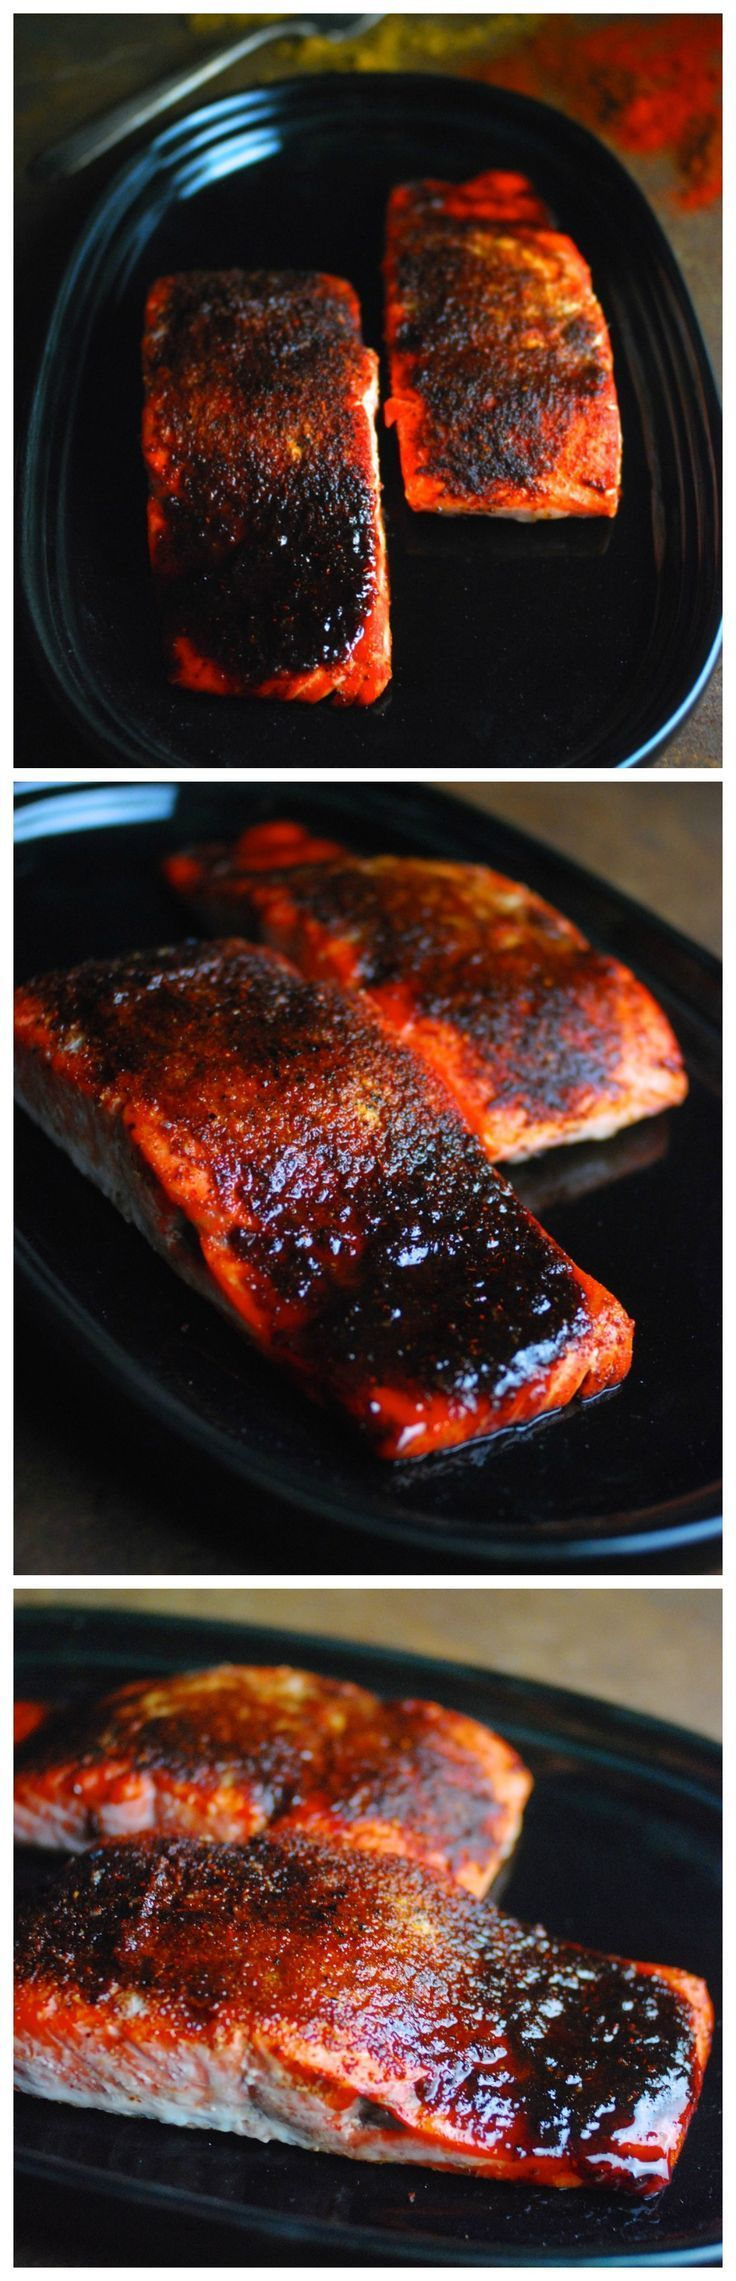 So good! Oven Roasted Maple BBQ Salmon - easy, protein-packed recipe ready in 25 minutes. Serve it atop fresh greens dressed with lemon juice. Paleo, gluten free.